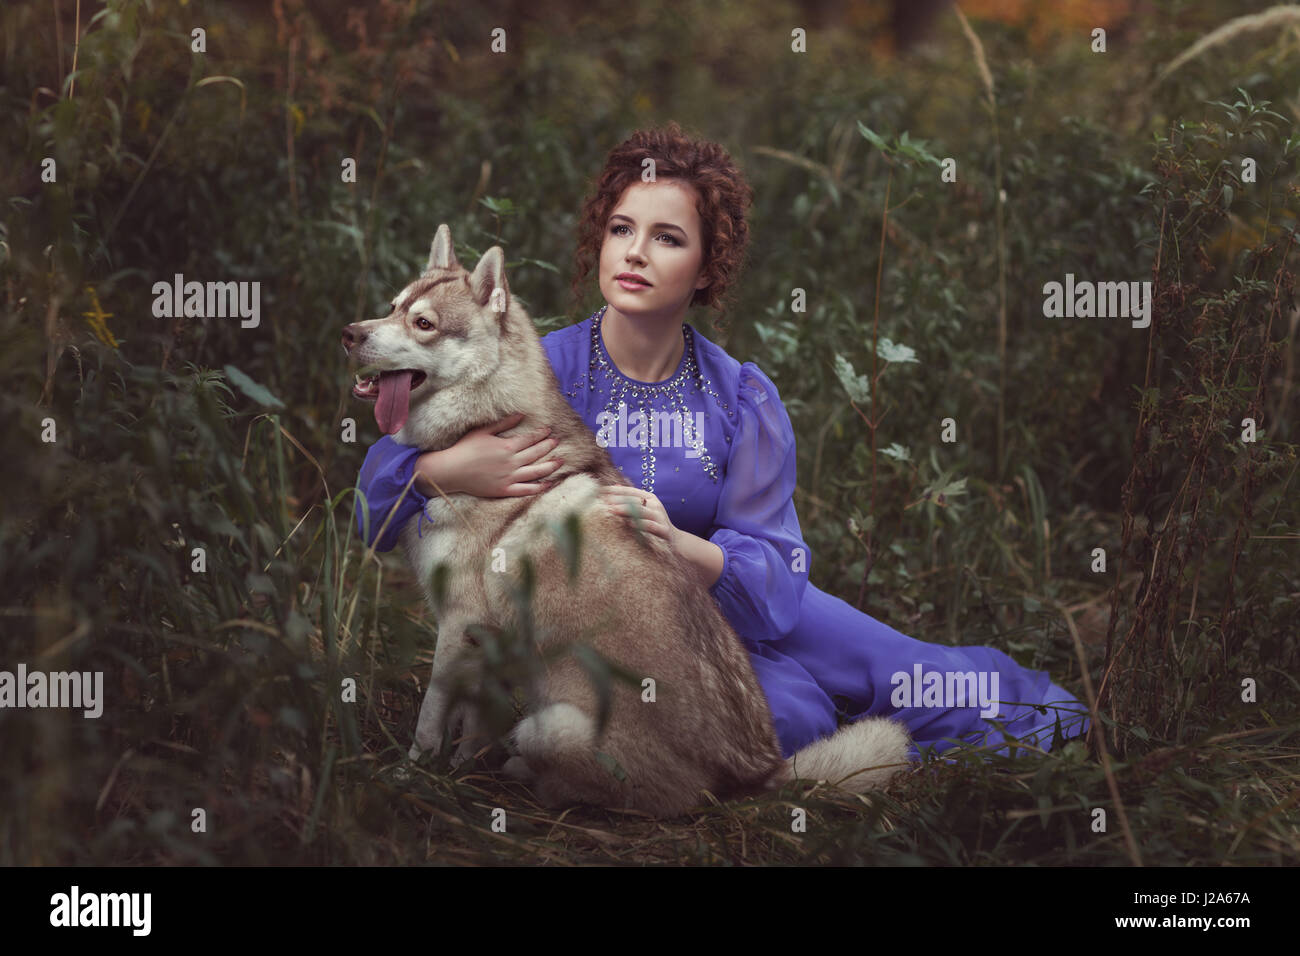 Girl hugging husky dog, they are in a fairy tale. - Stock Image